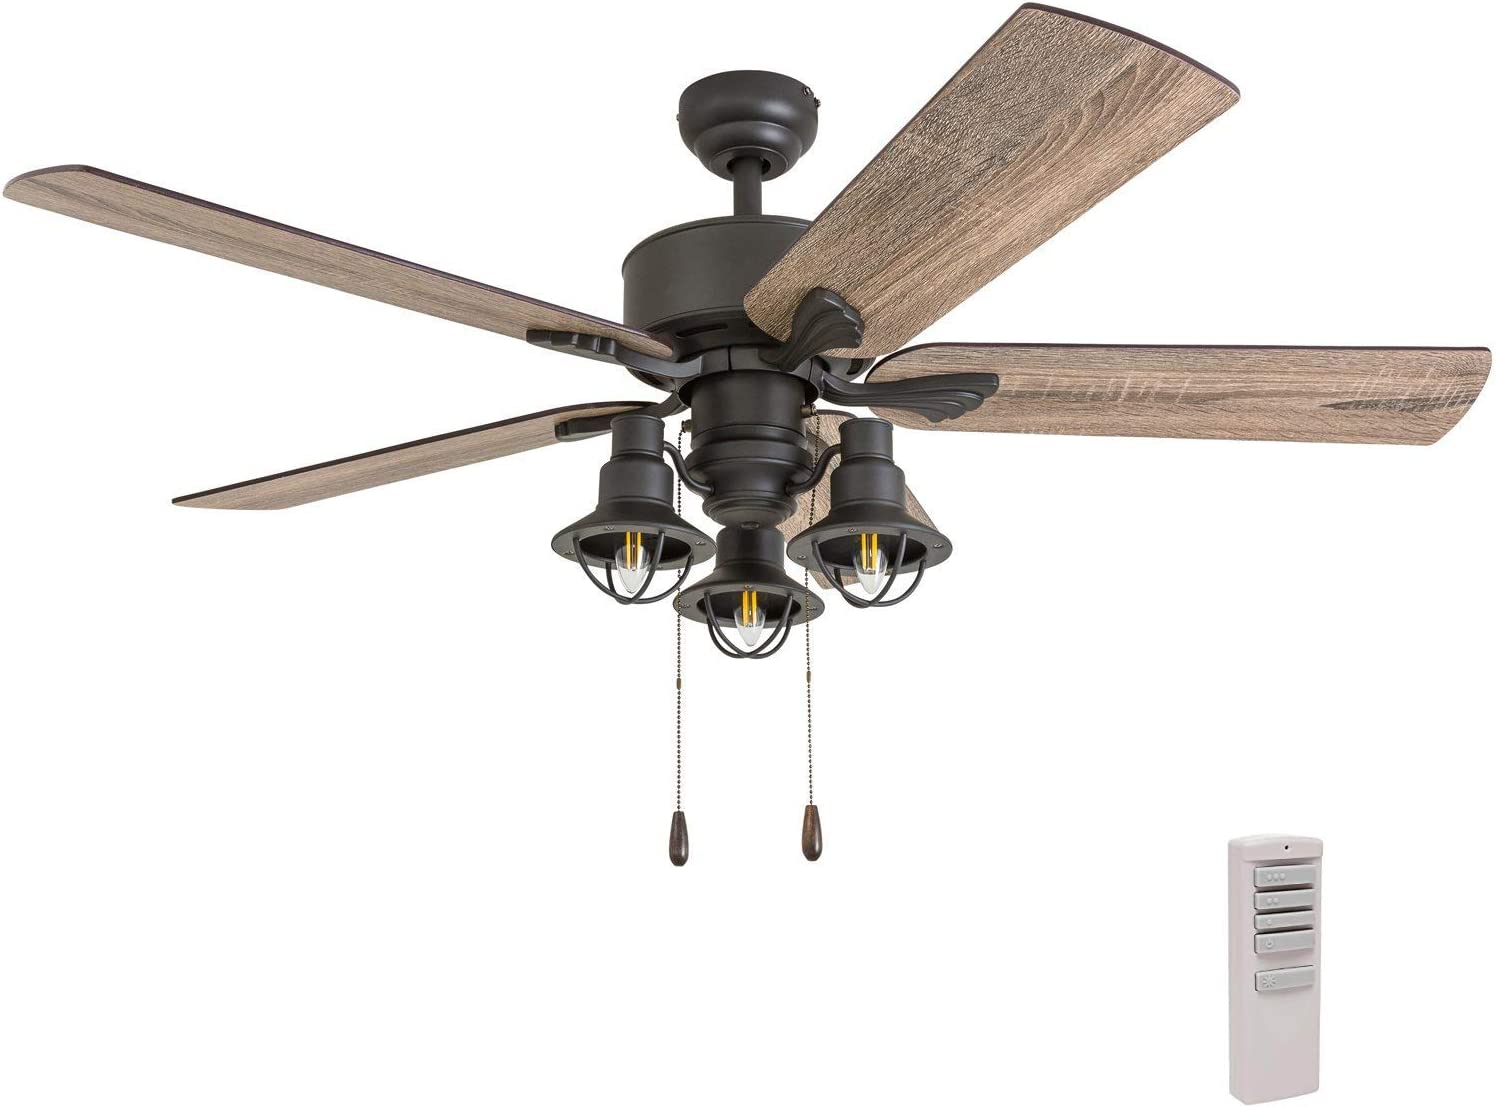 Prominence Home 50757-01 Sivan Farmhouse Ceiling Fan 3 Speed Remote , 52 , Barnwood Tumbleweed, Aged Bronze